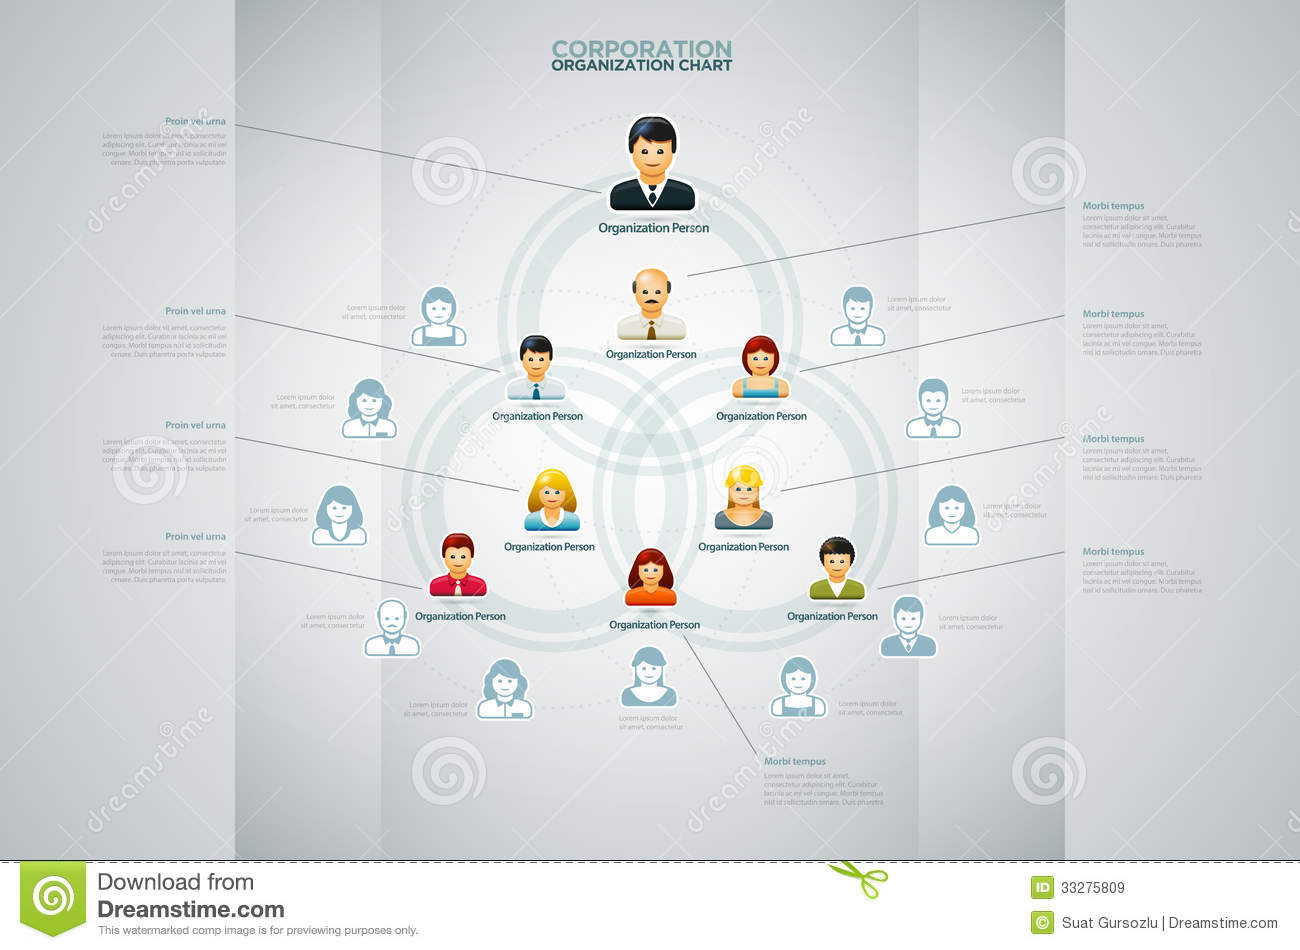 Organization Chart Royalty Free Stock Images - Image: 33275809